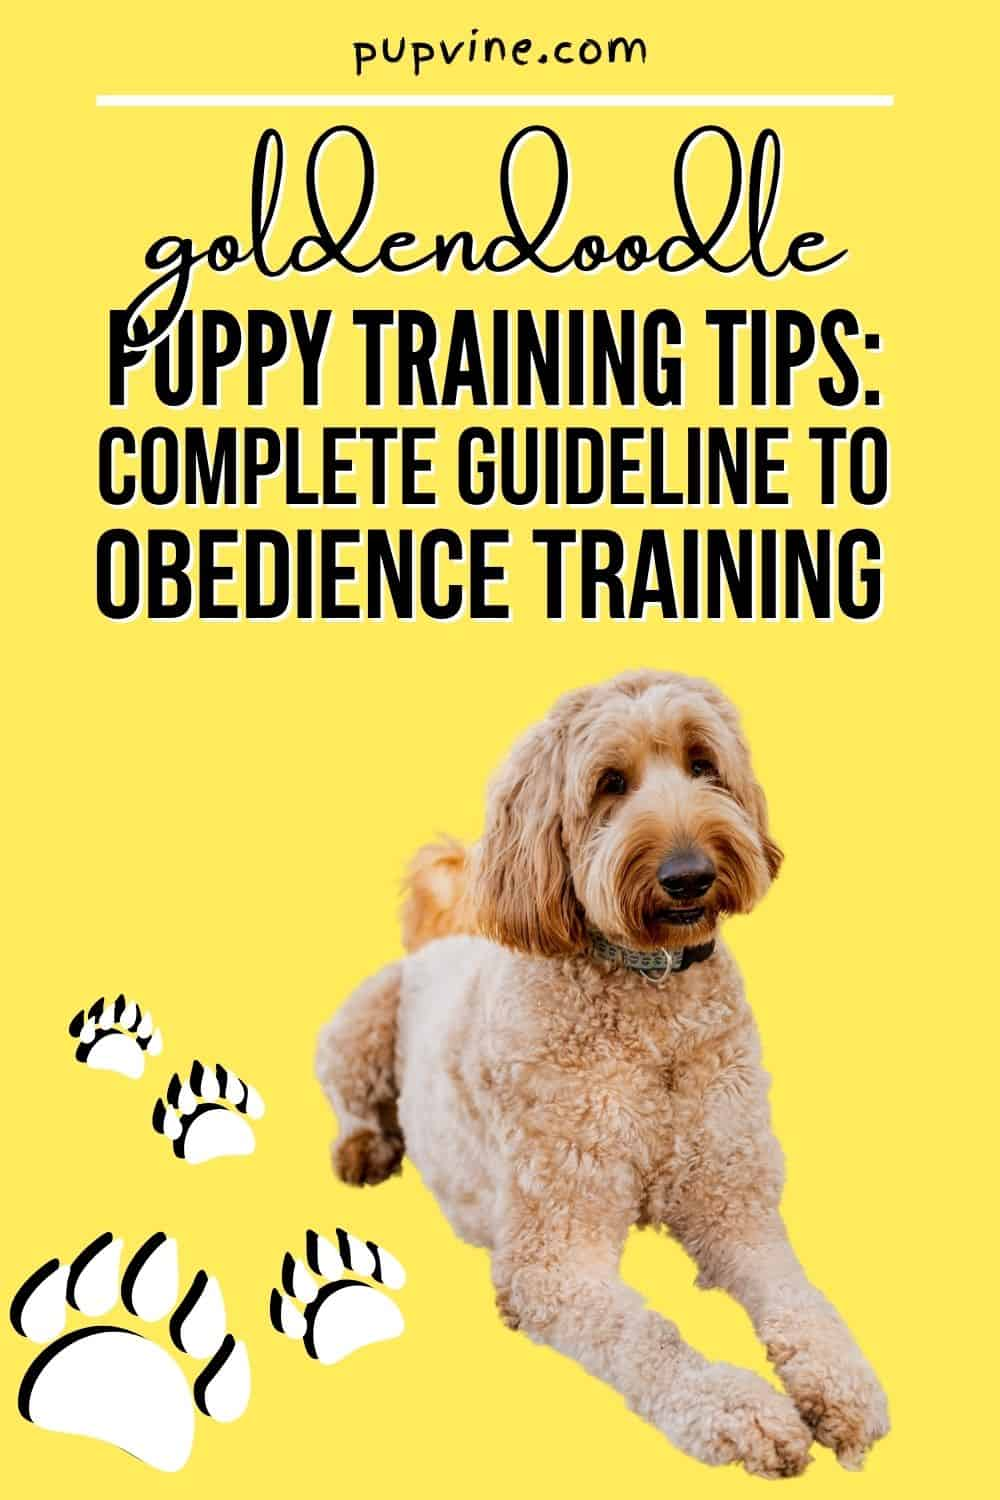 Goldendoodle Puppy Training Tips – Complete Guideline To Obedience Training